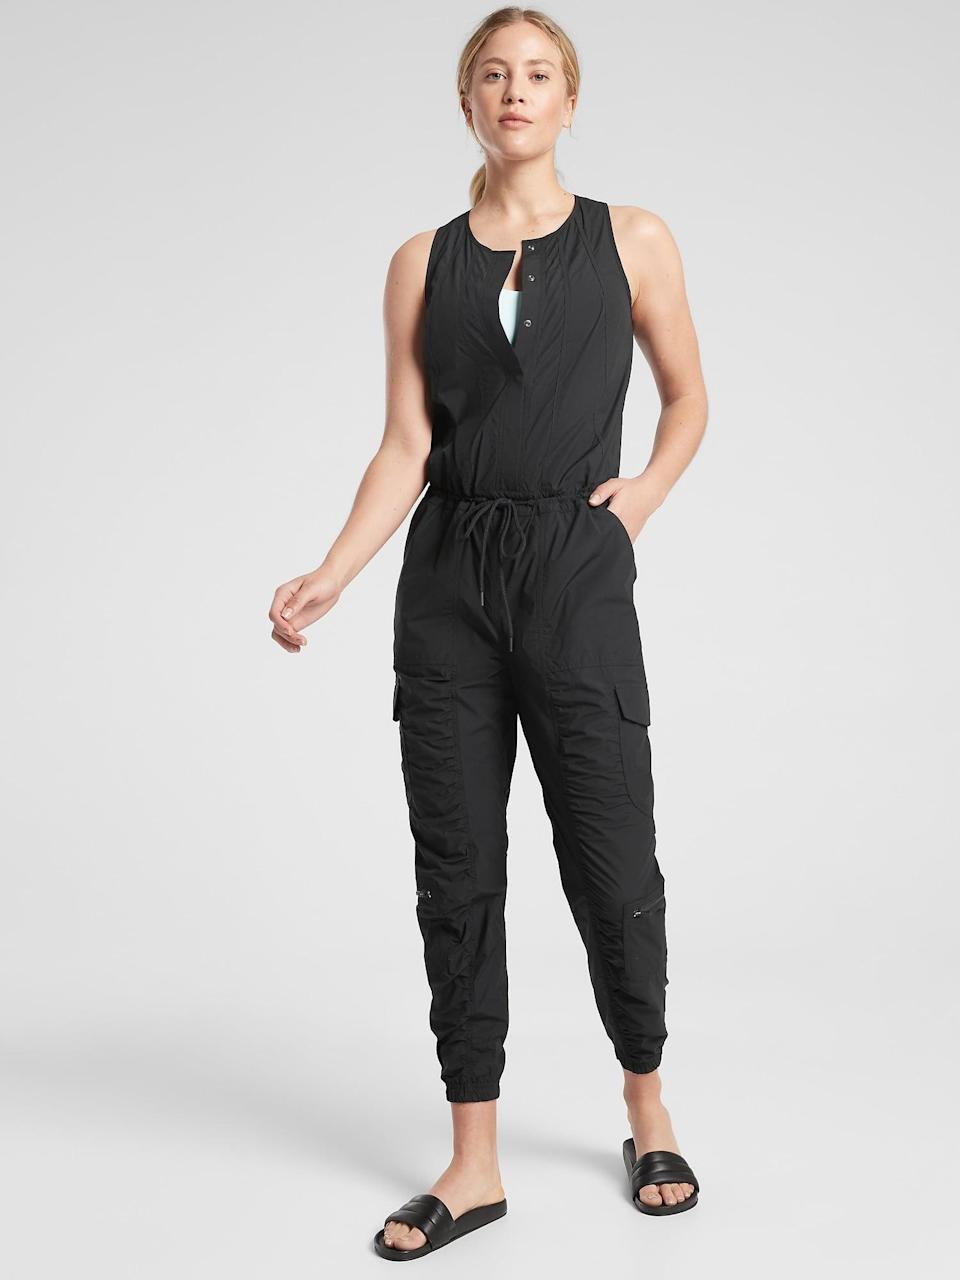 <p>If they love jumpsuits, then get them this comfy and versatile <span>Athleta Canopy Parachute Romper</span> ($35, originally $158).</p>